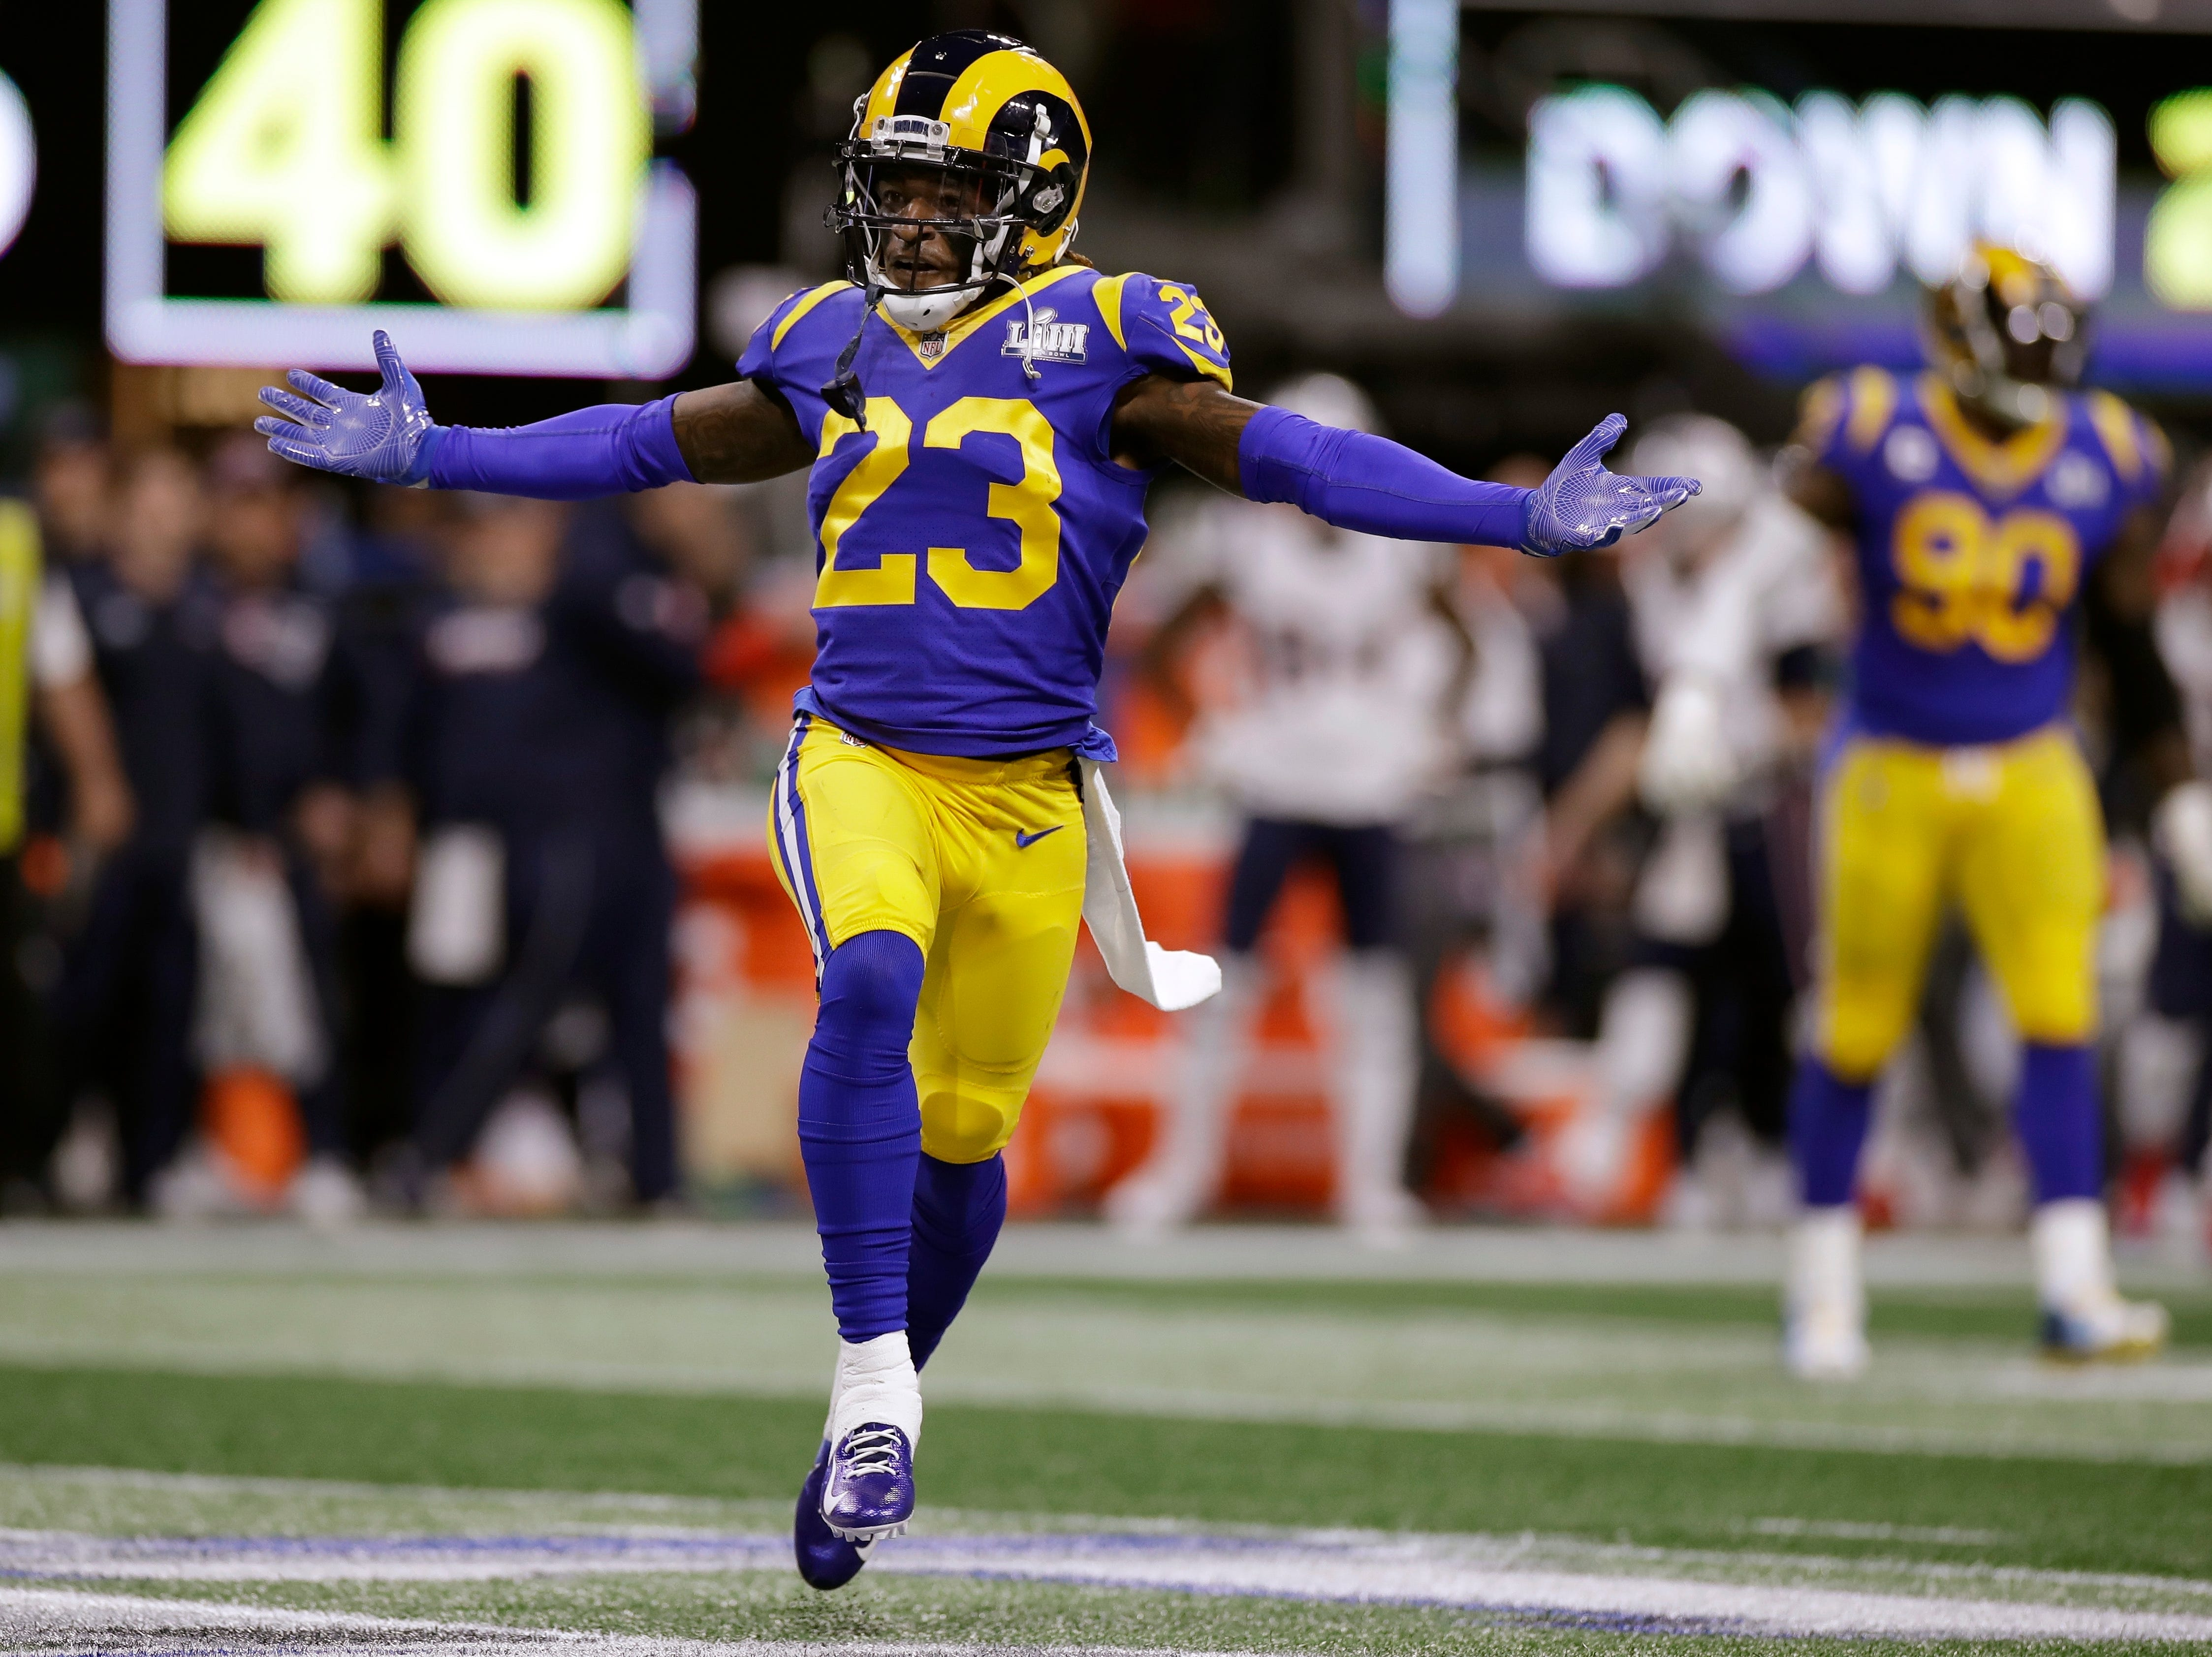 Los Angeles Rams' Nickell Robey-Coleman celebrates after an interception by teammate Cory Littleton (58) during the first half.